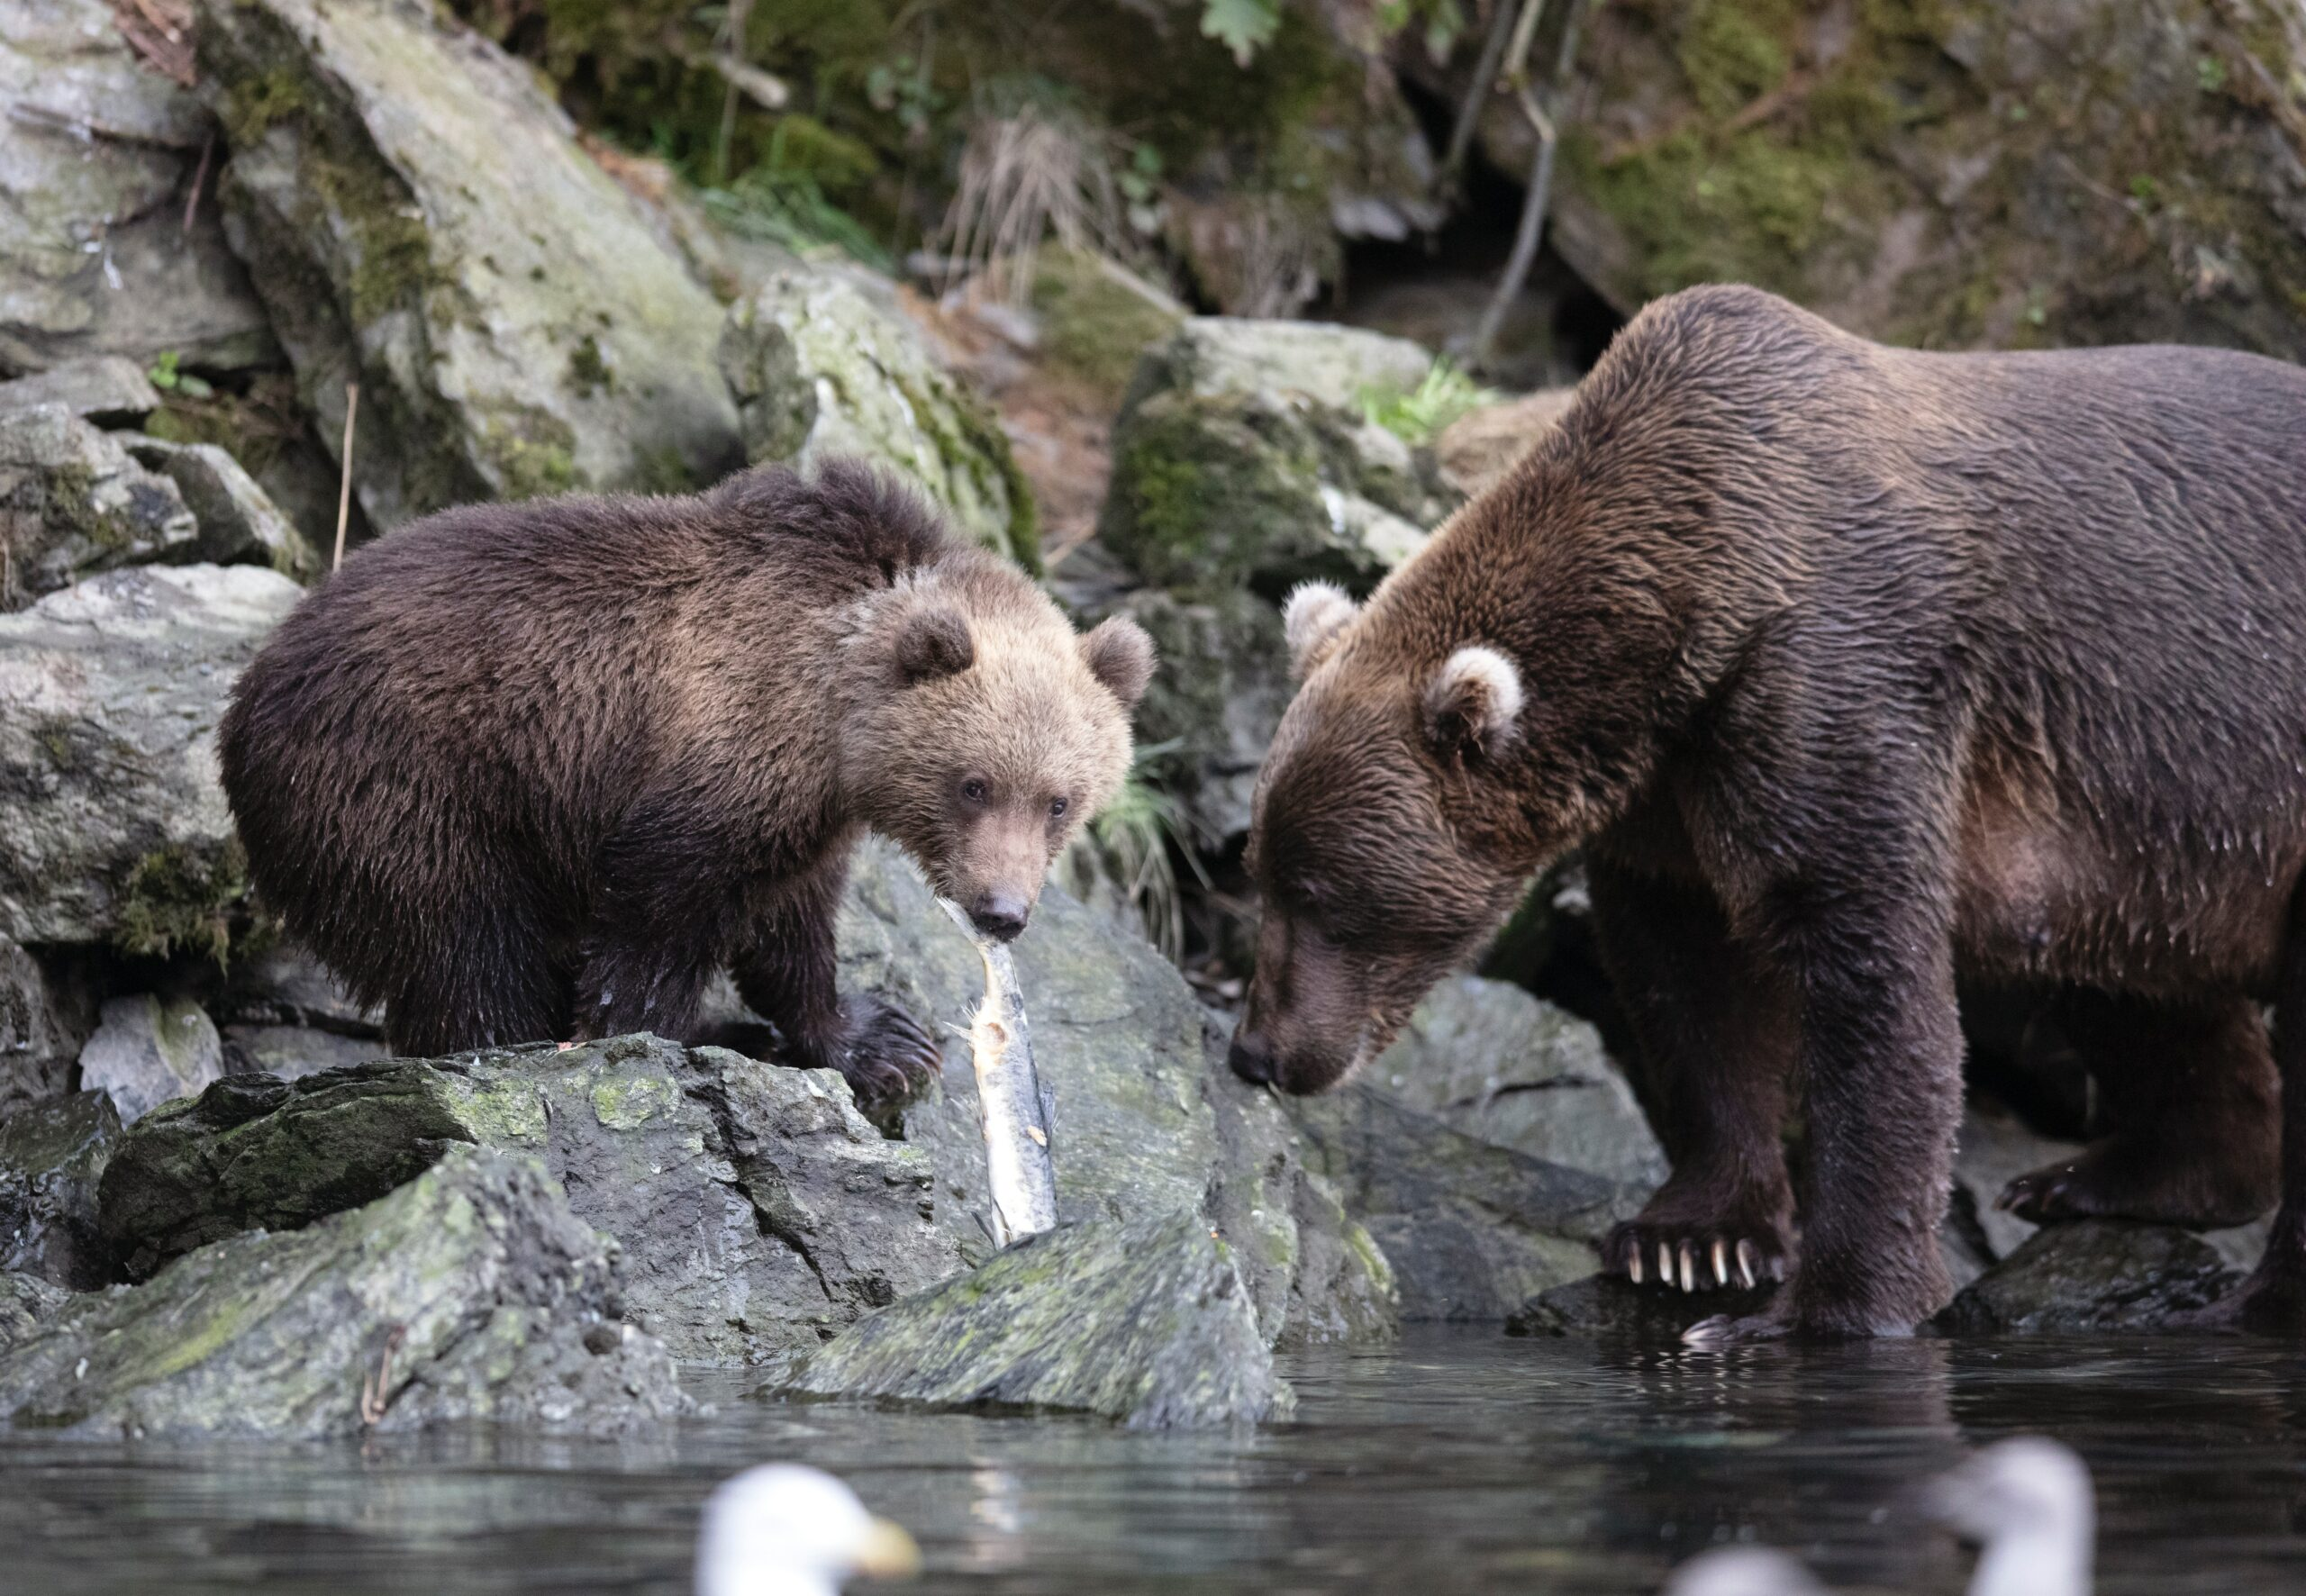 picture of brown bear and cub in a stream